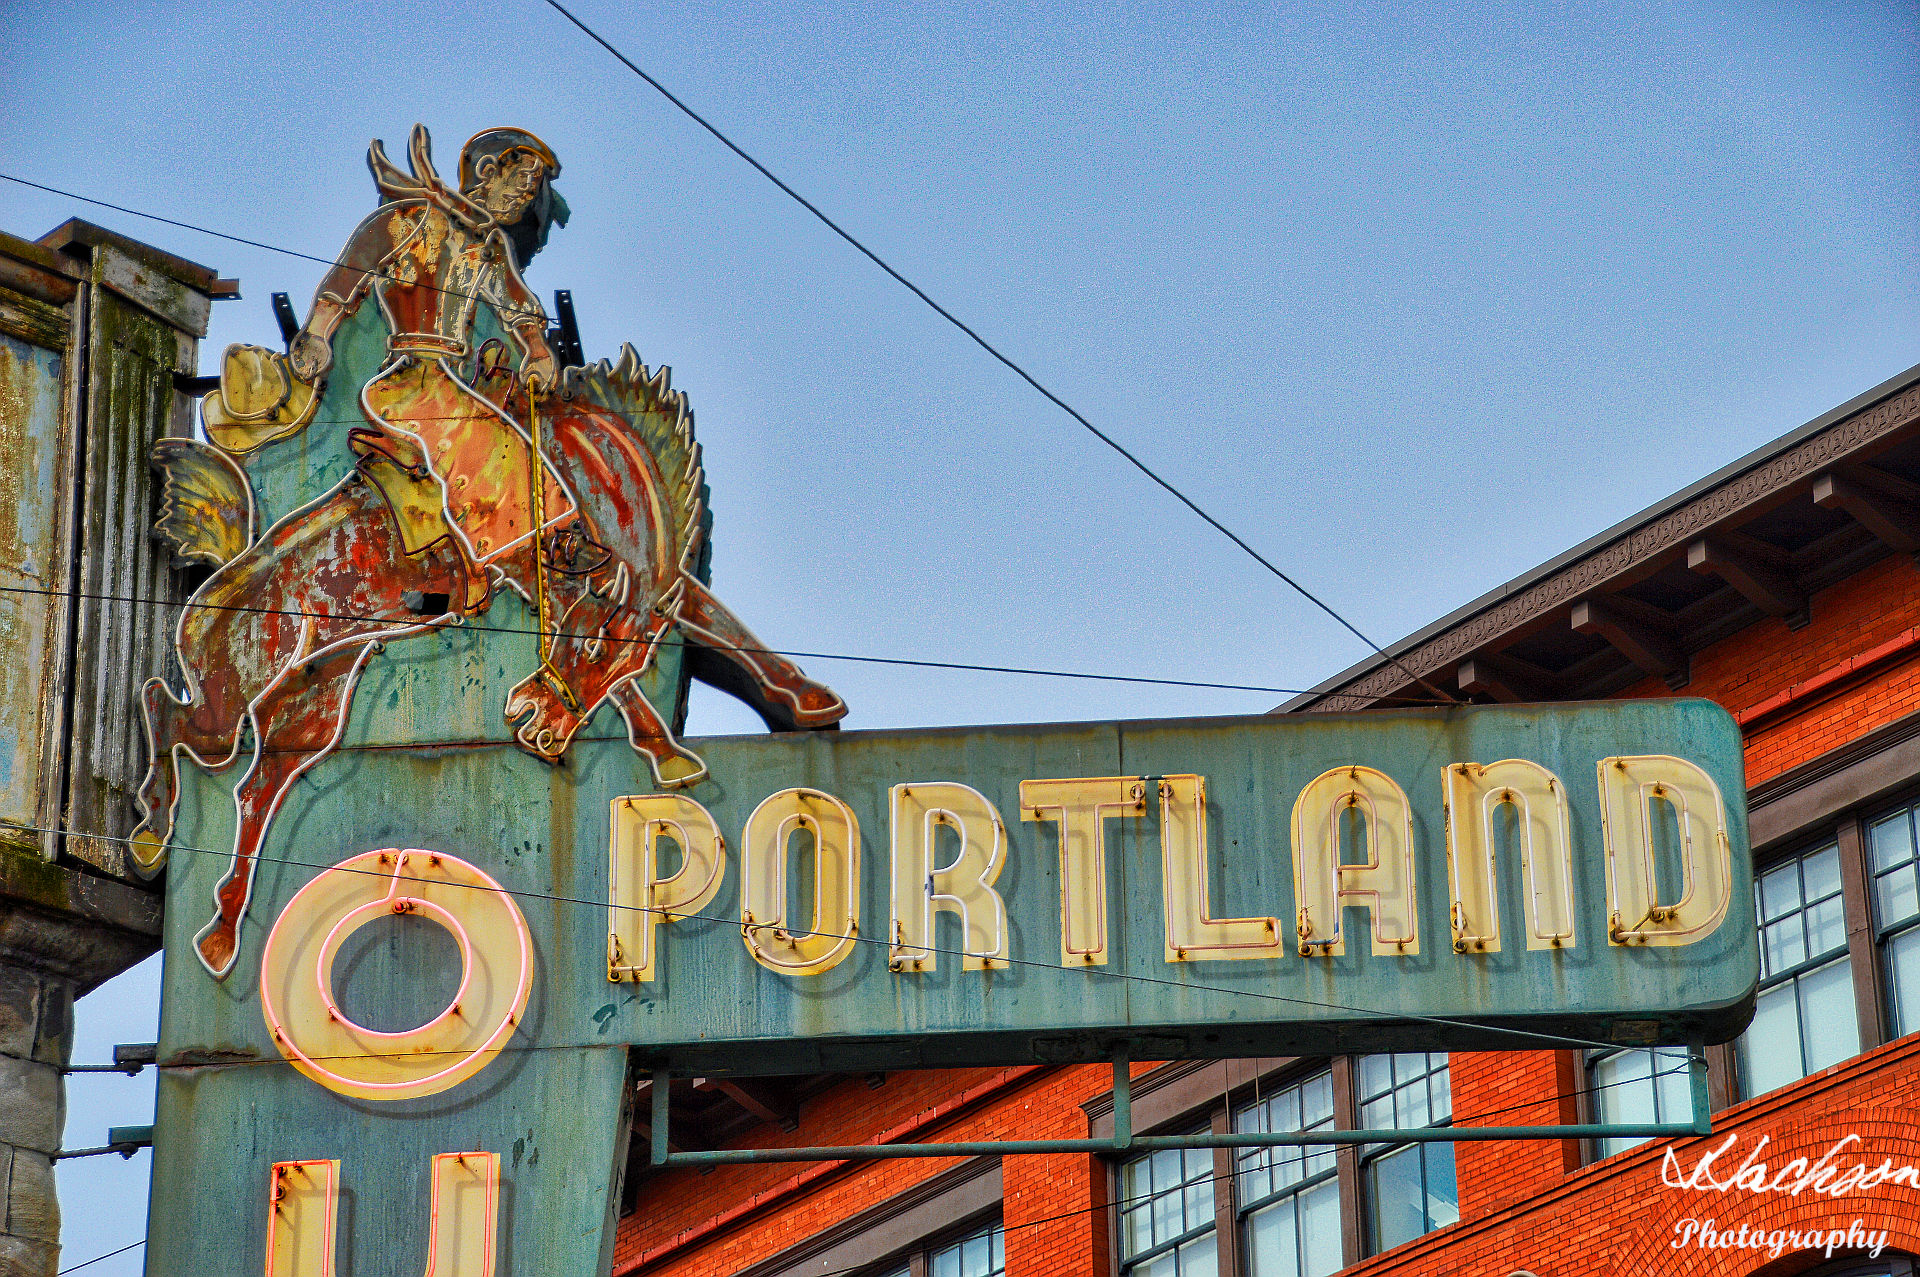 Photo of Portland Outdoor neon